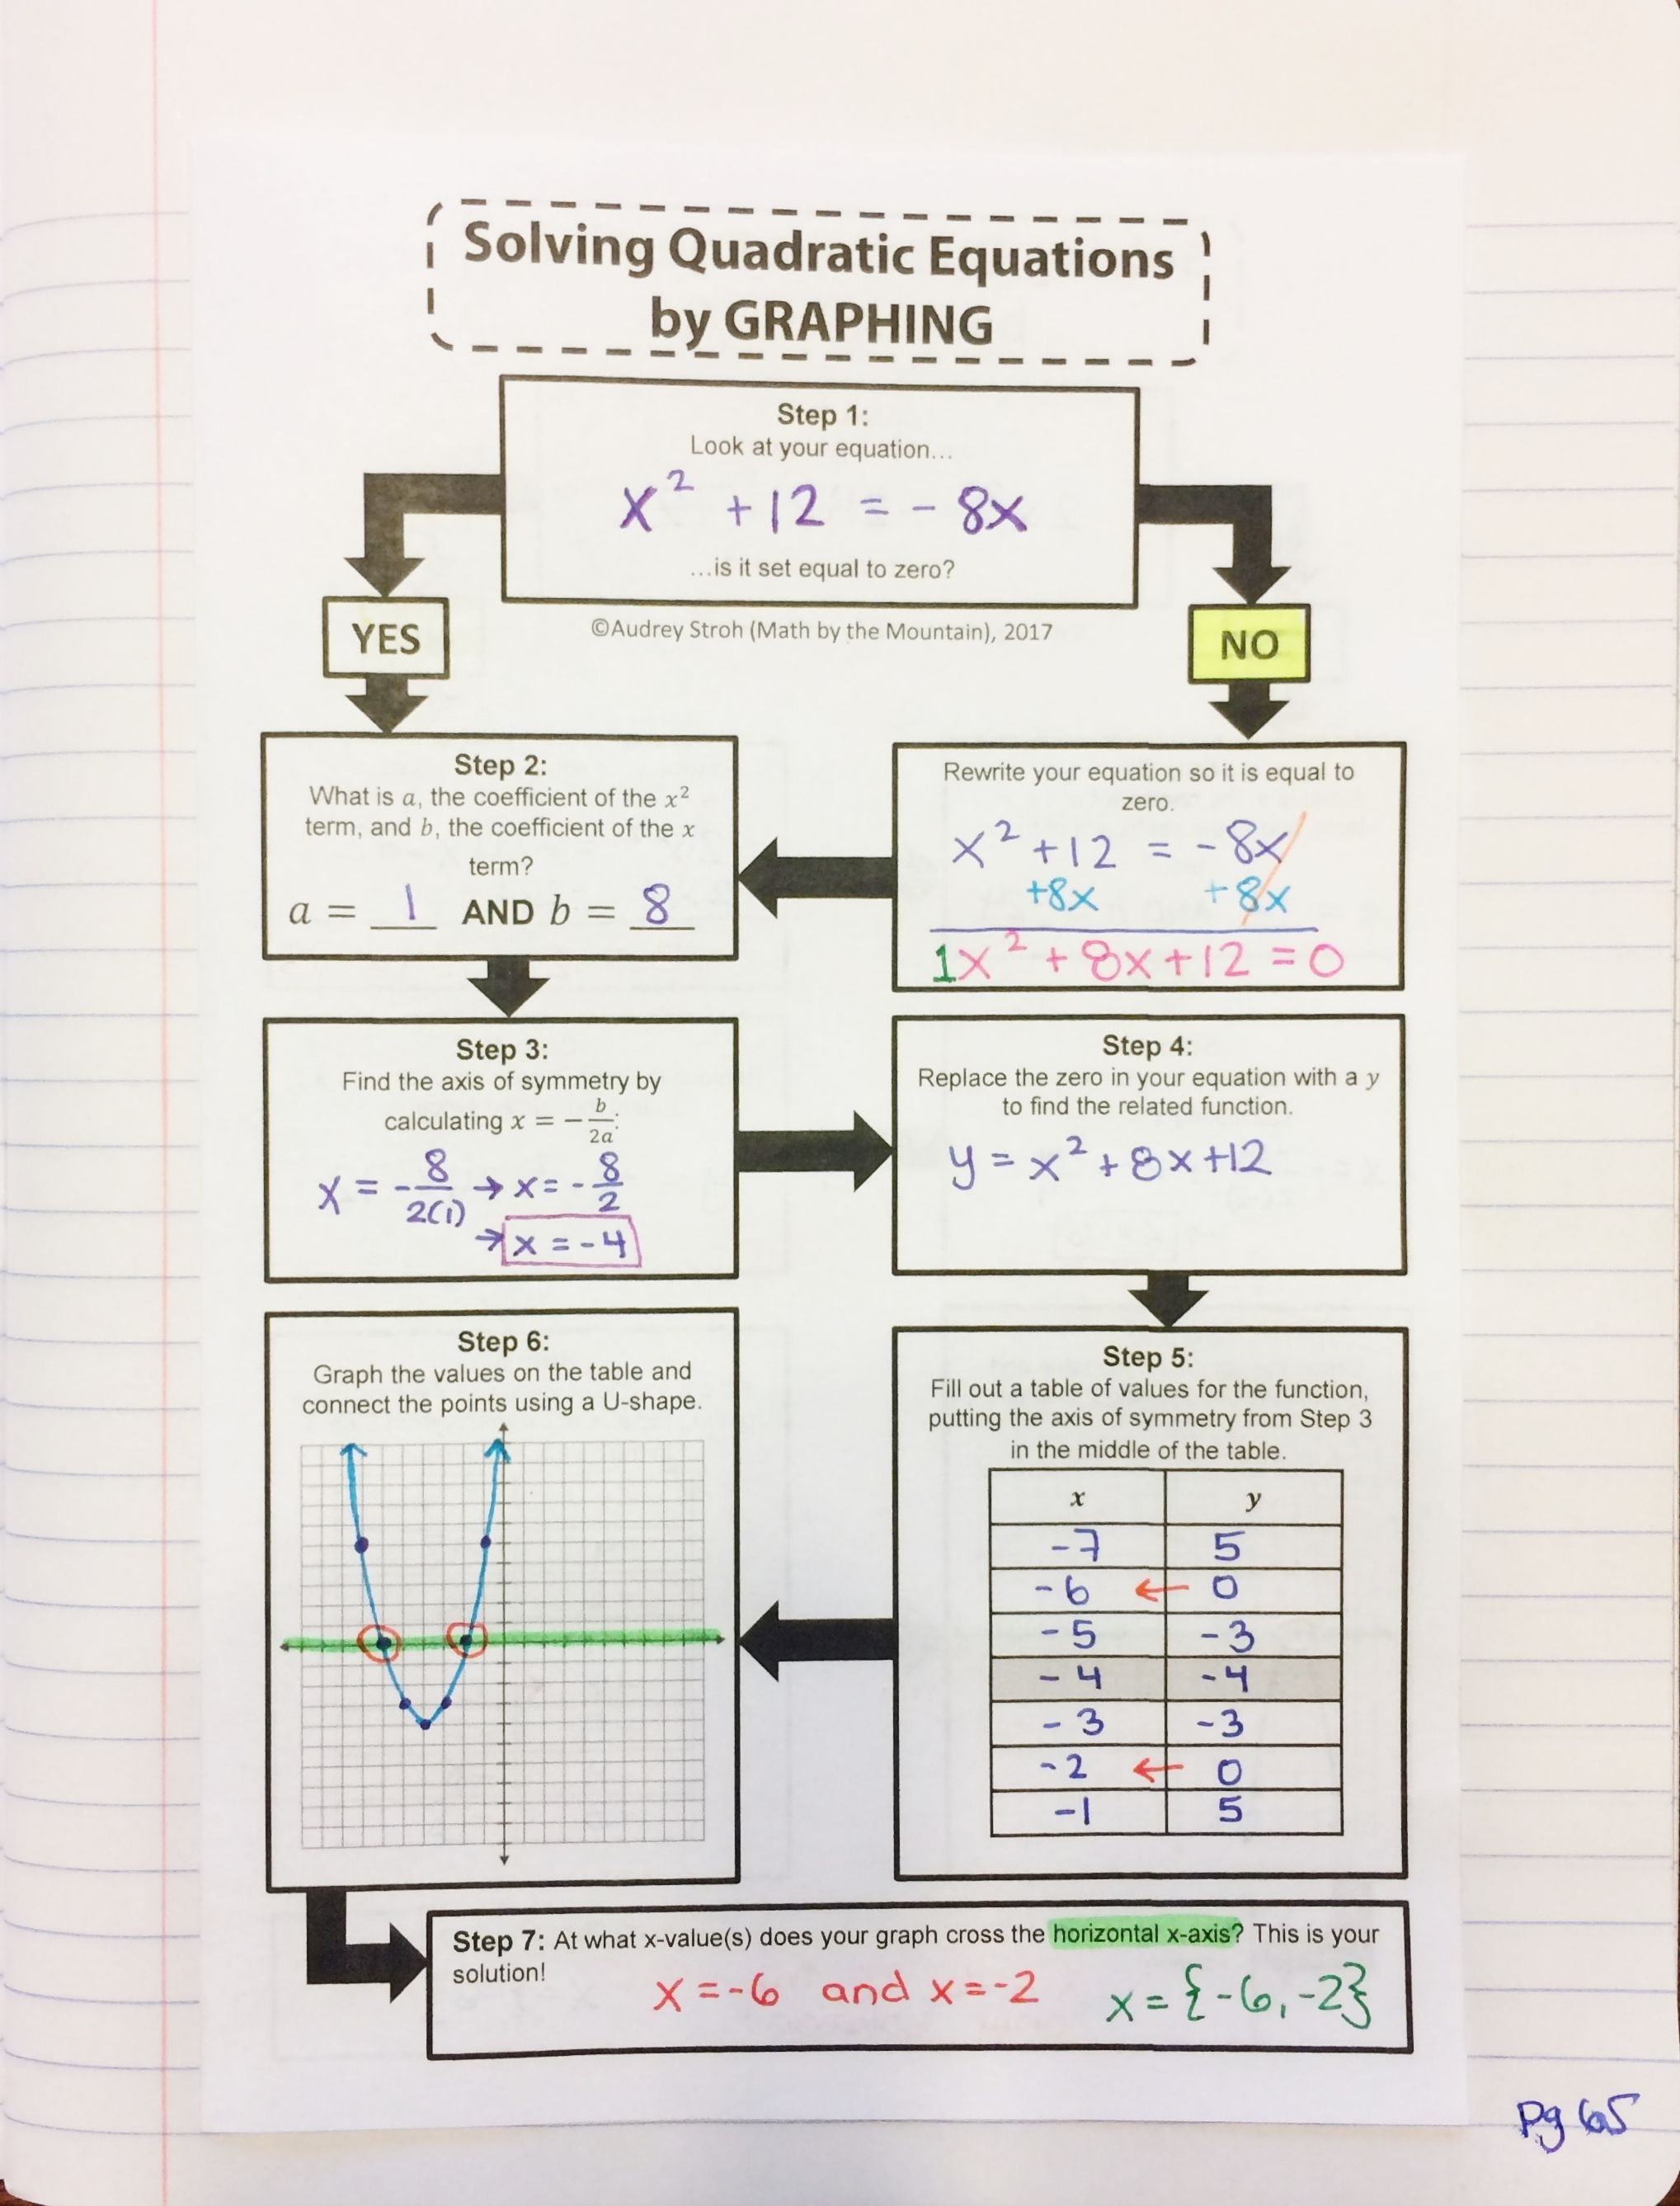 Solving Quadratic Equations By Graphing Flowchart